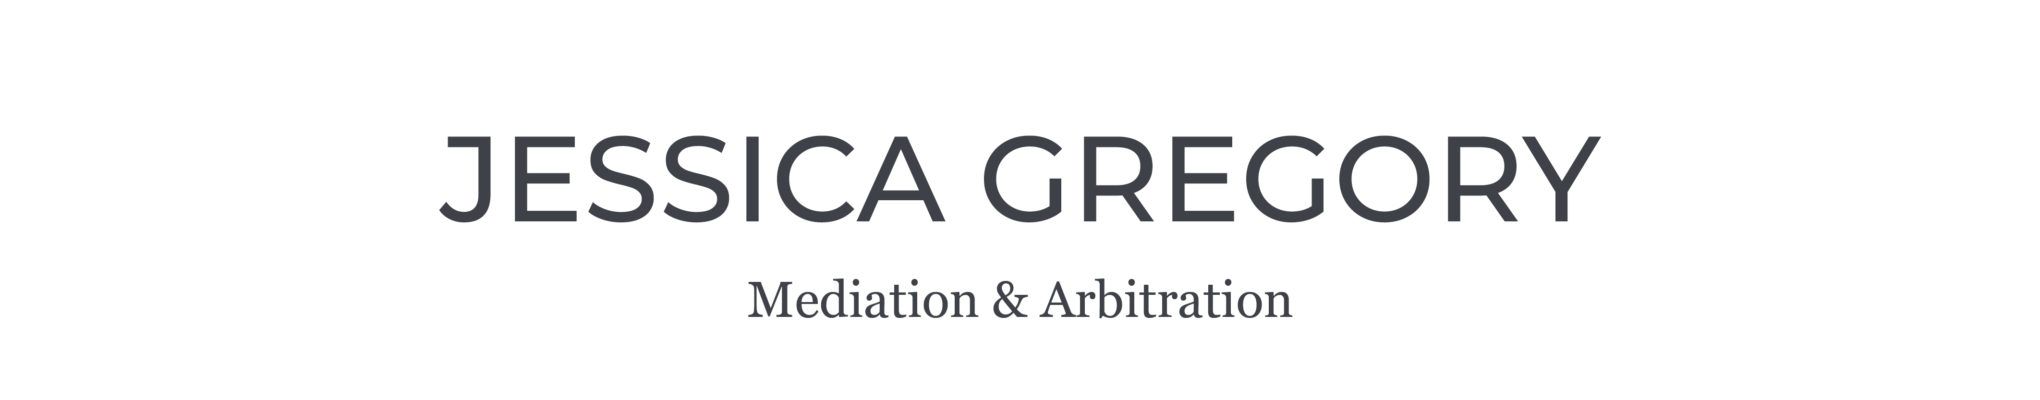 Jessica Gregory Mediation & Arbitration